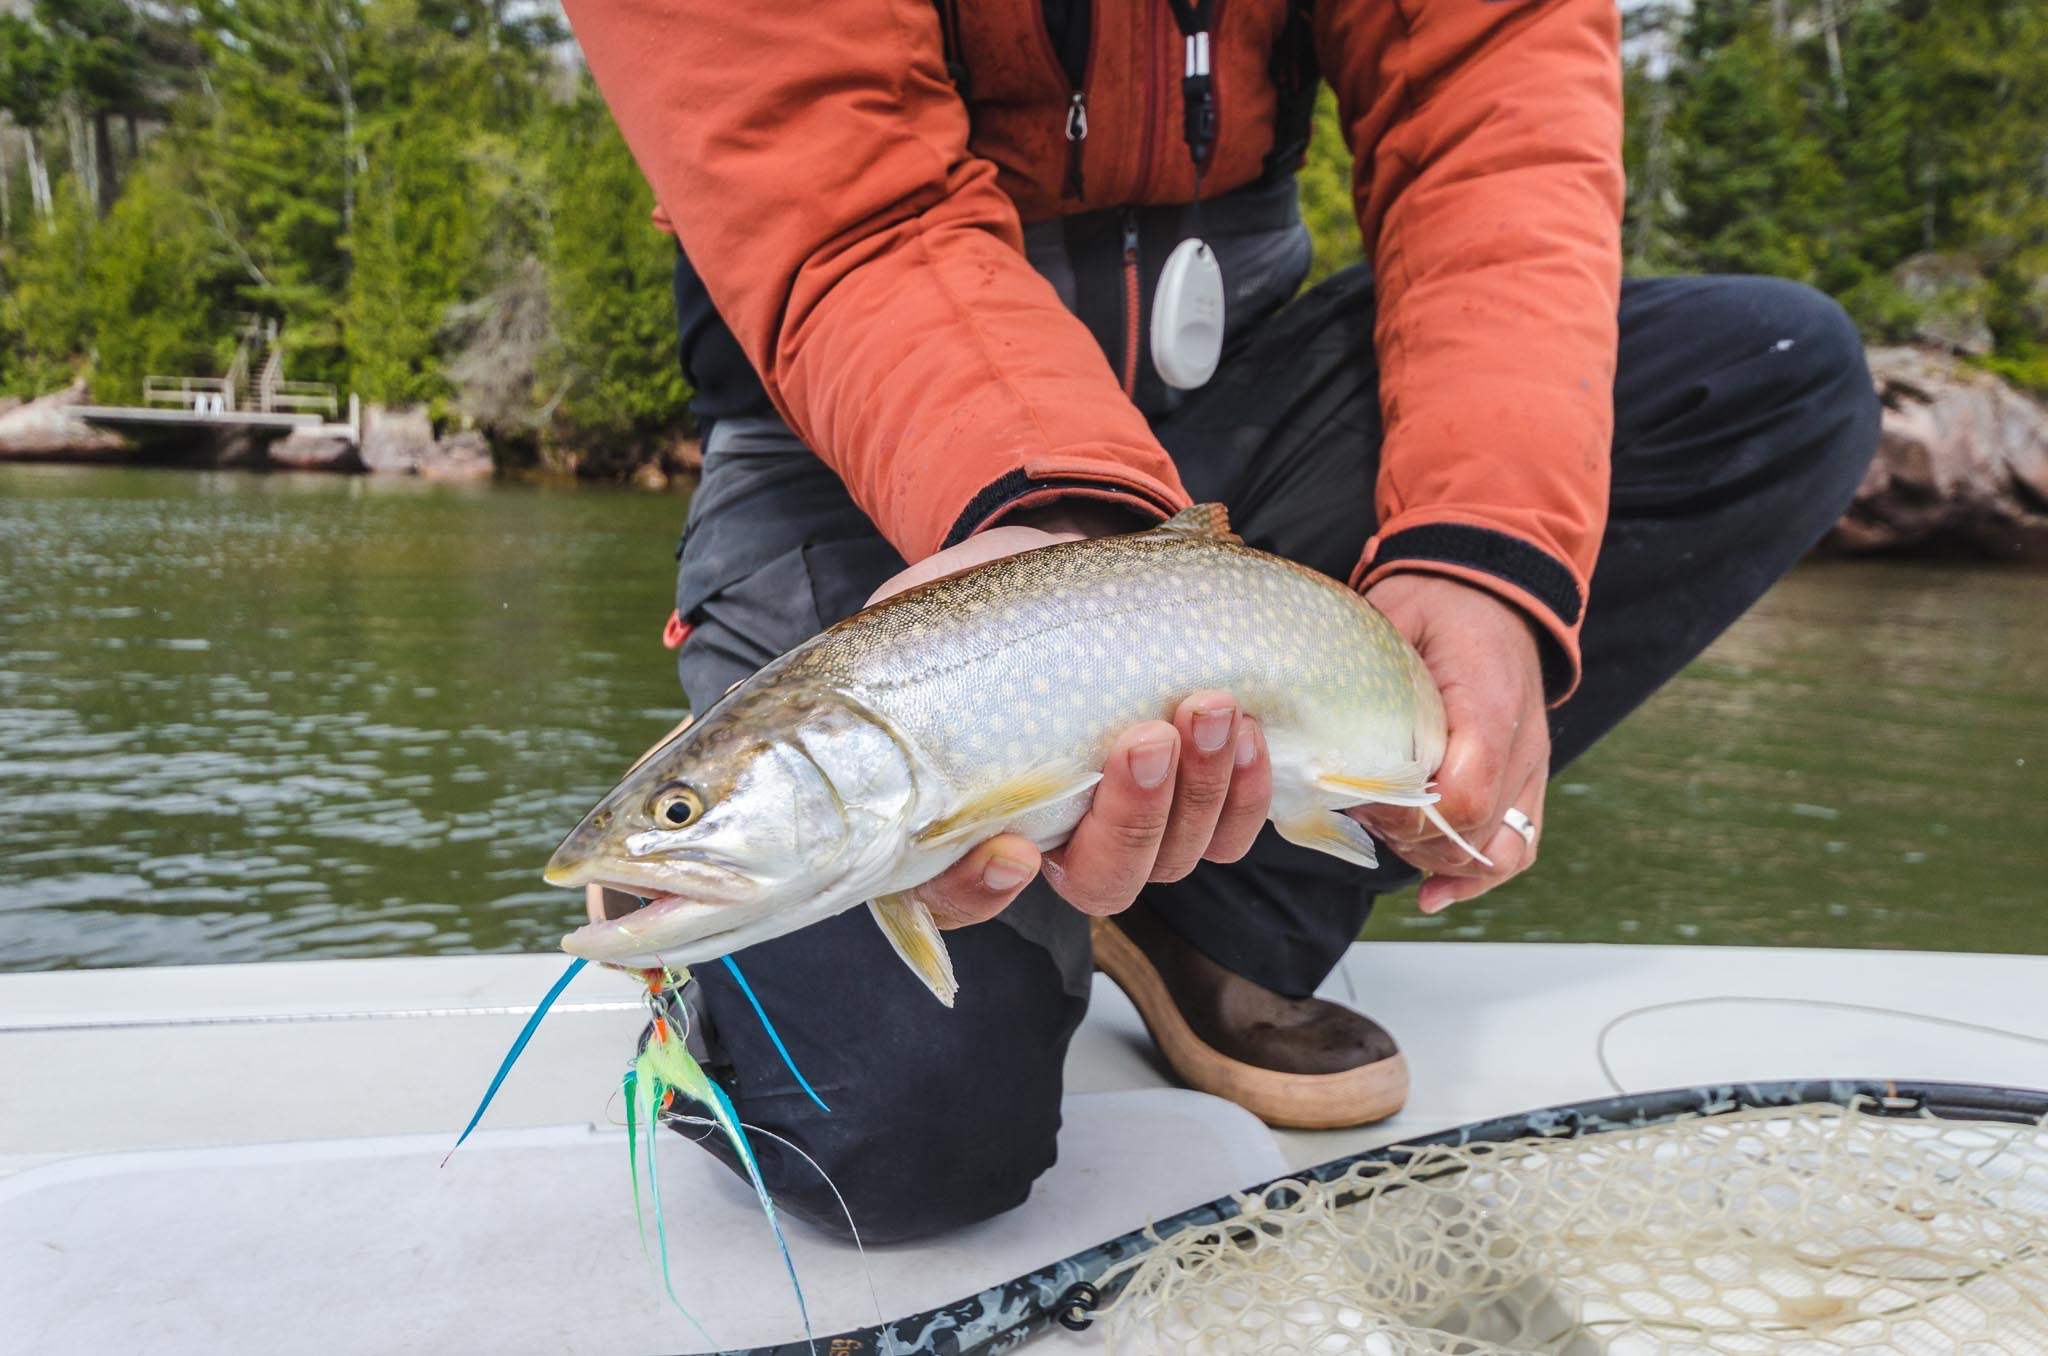 All the Splake we have right now make for great targets on a fly rod or light tackle.  This one smashed a big bright streamer on our second cast of the day.